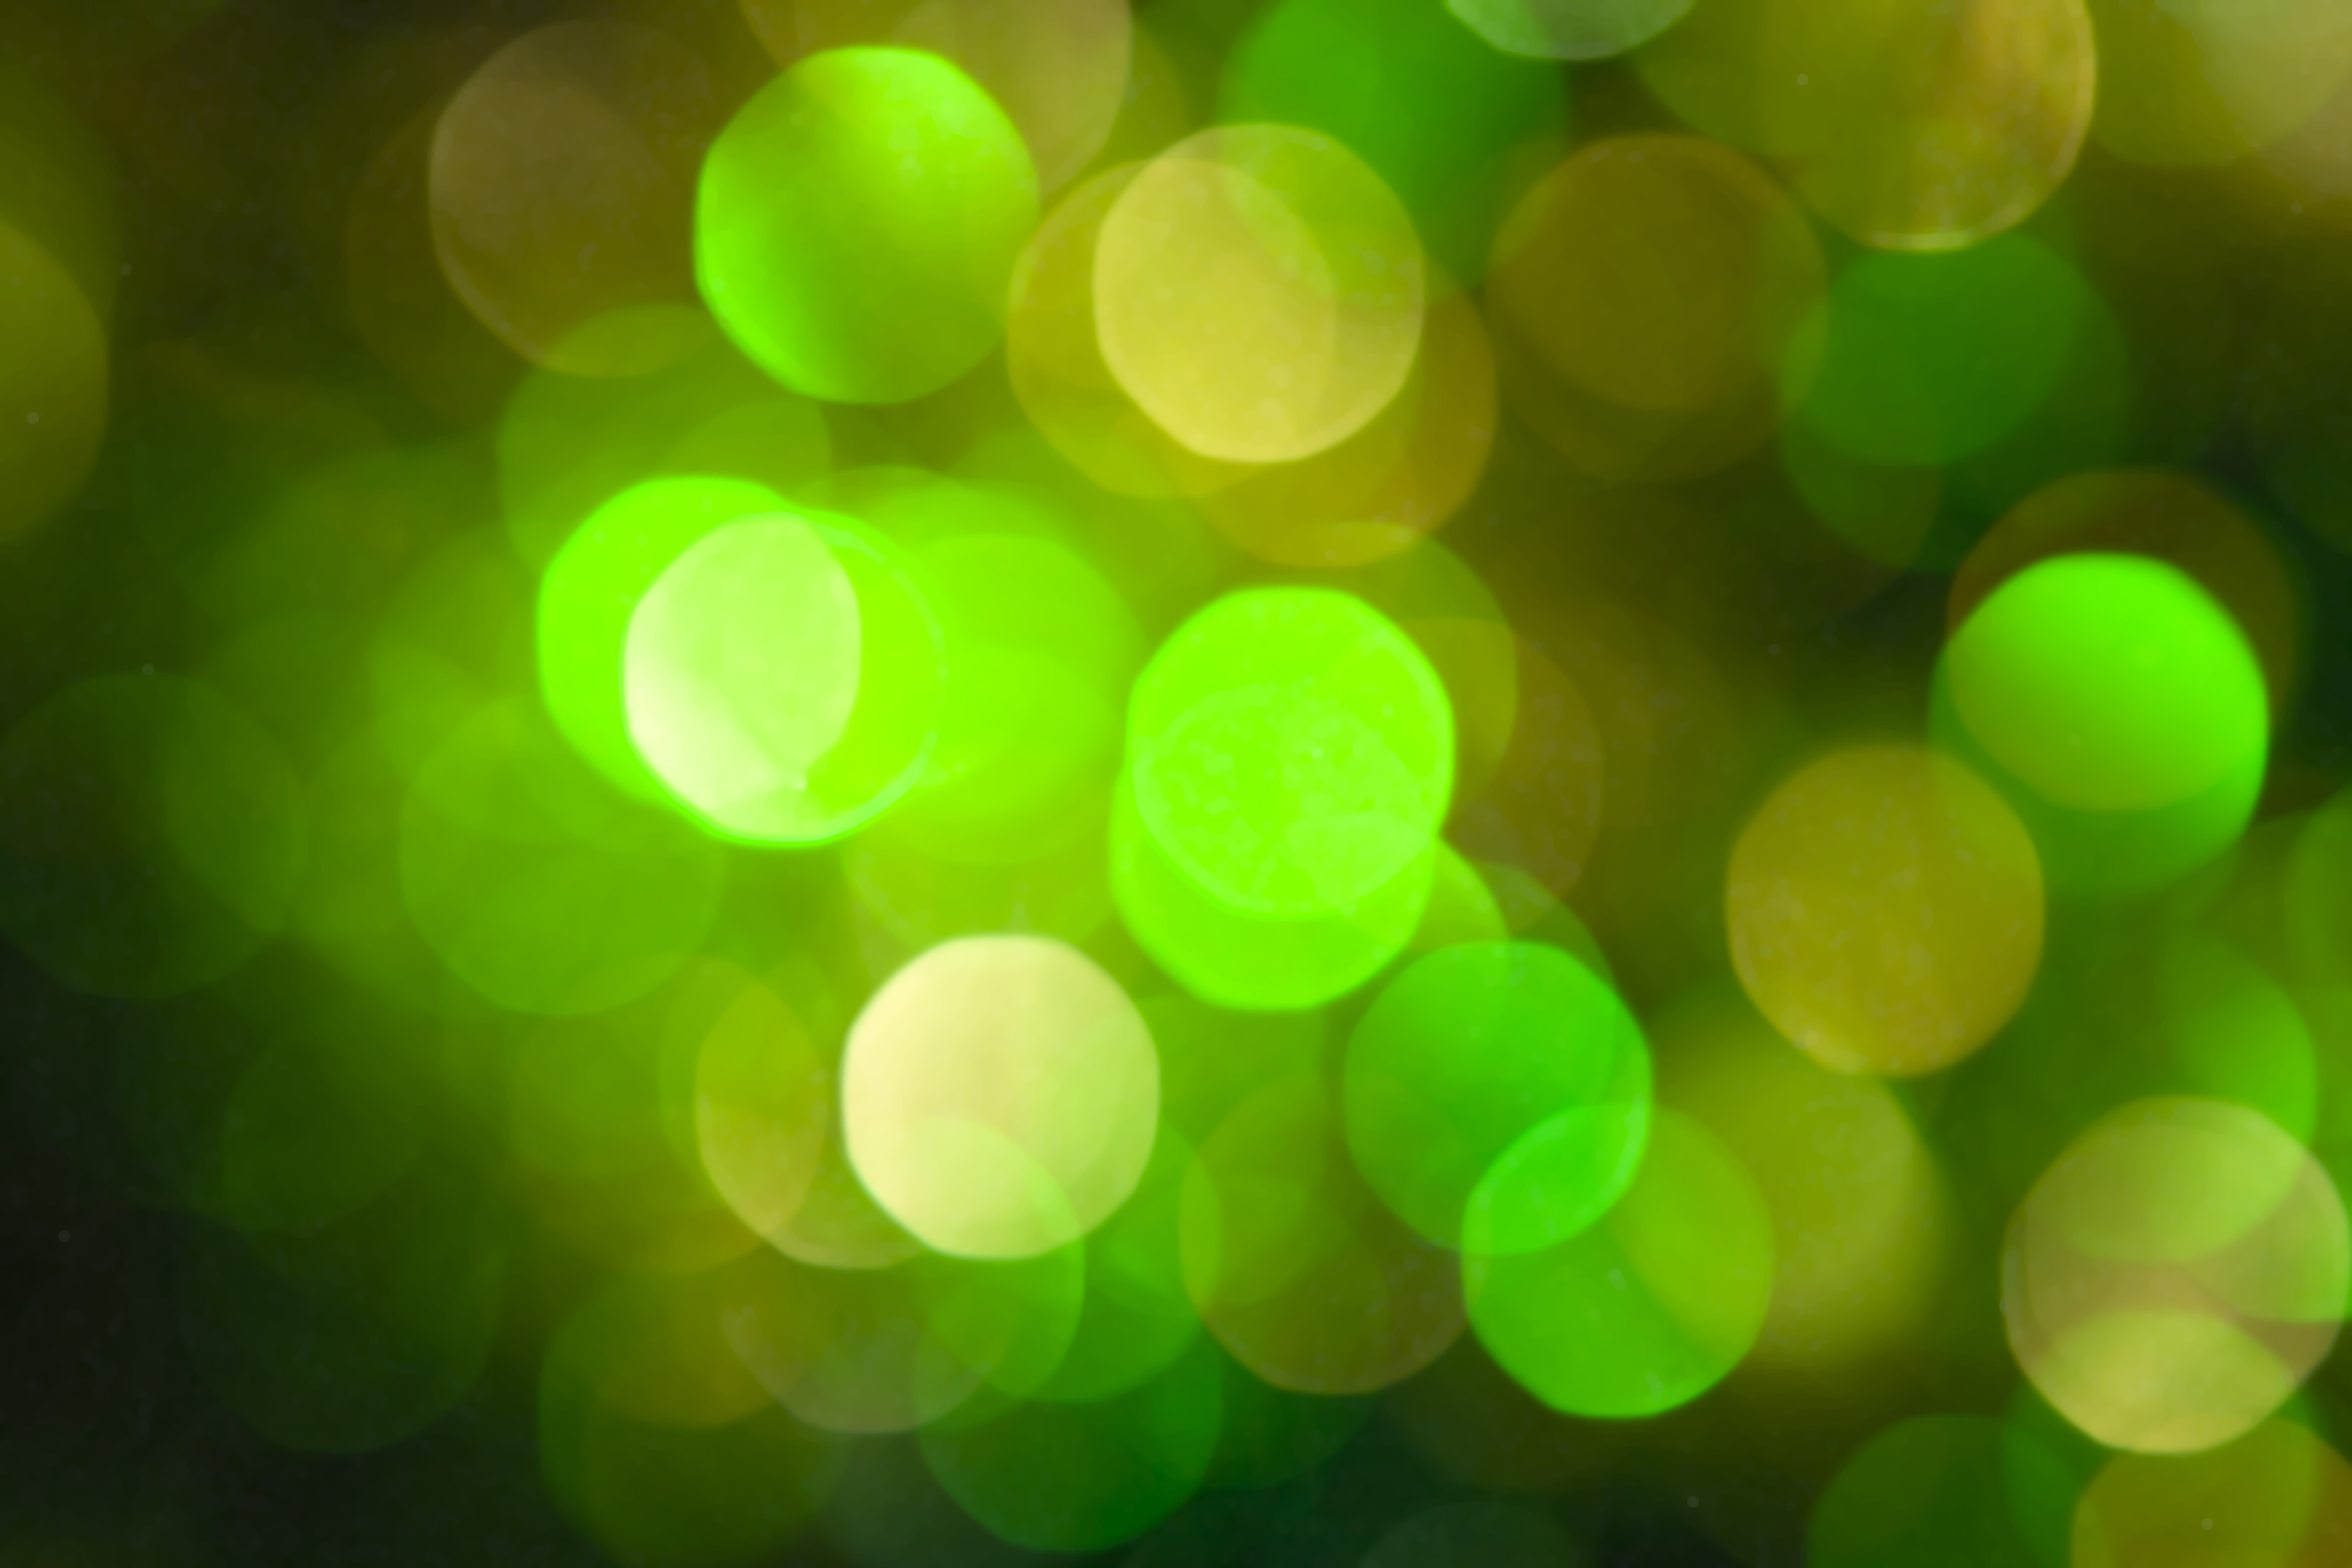 Bokeh background, Abstract, Glow, Wish, Vivid, HQ Photo